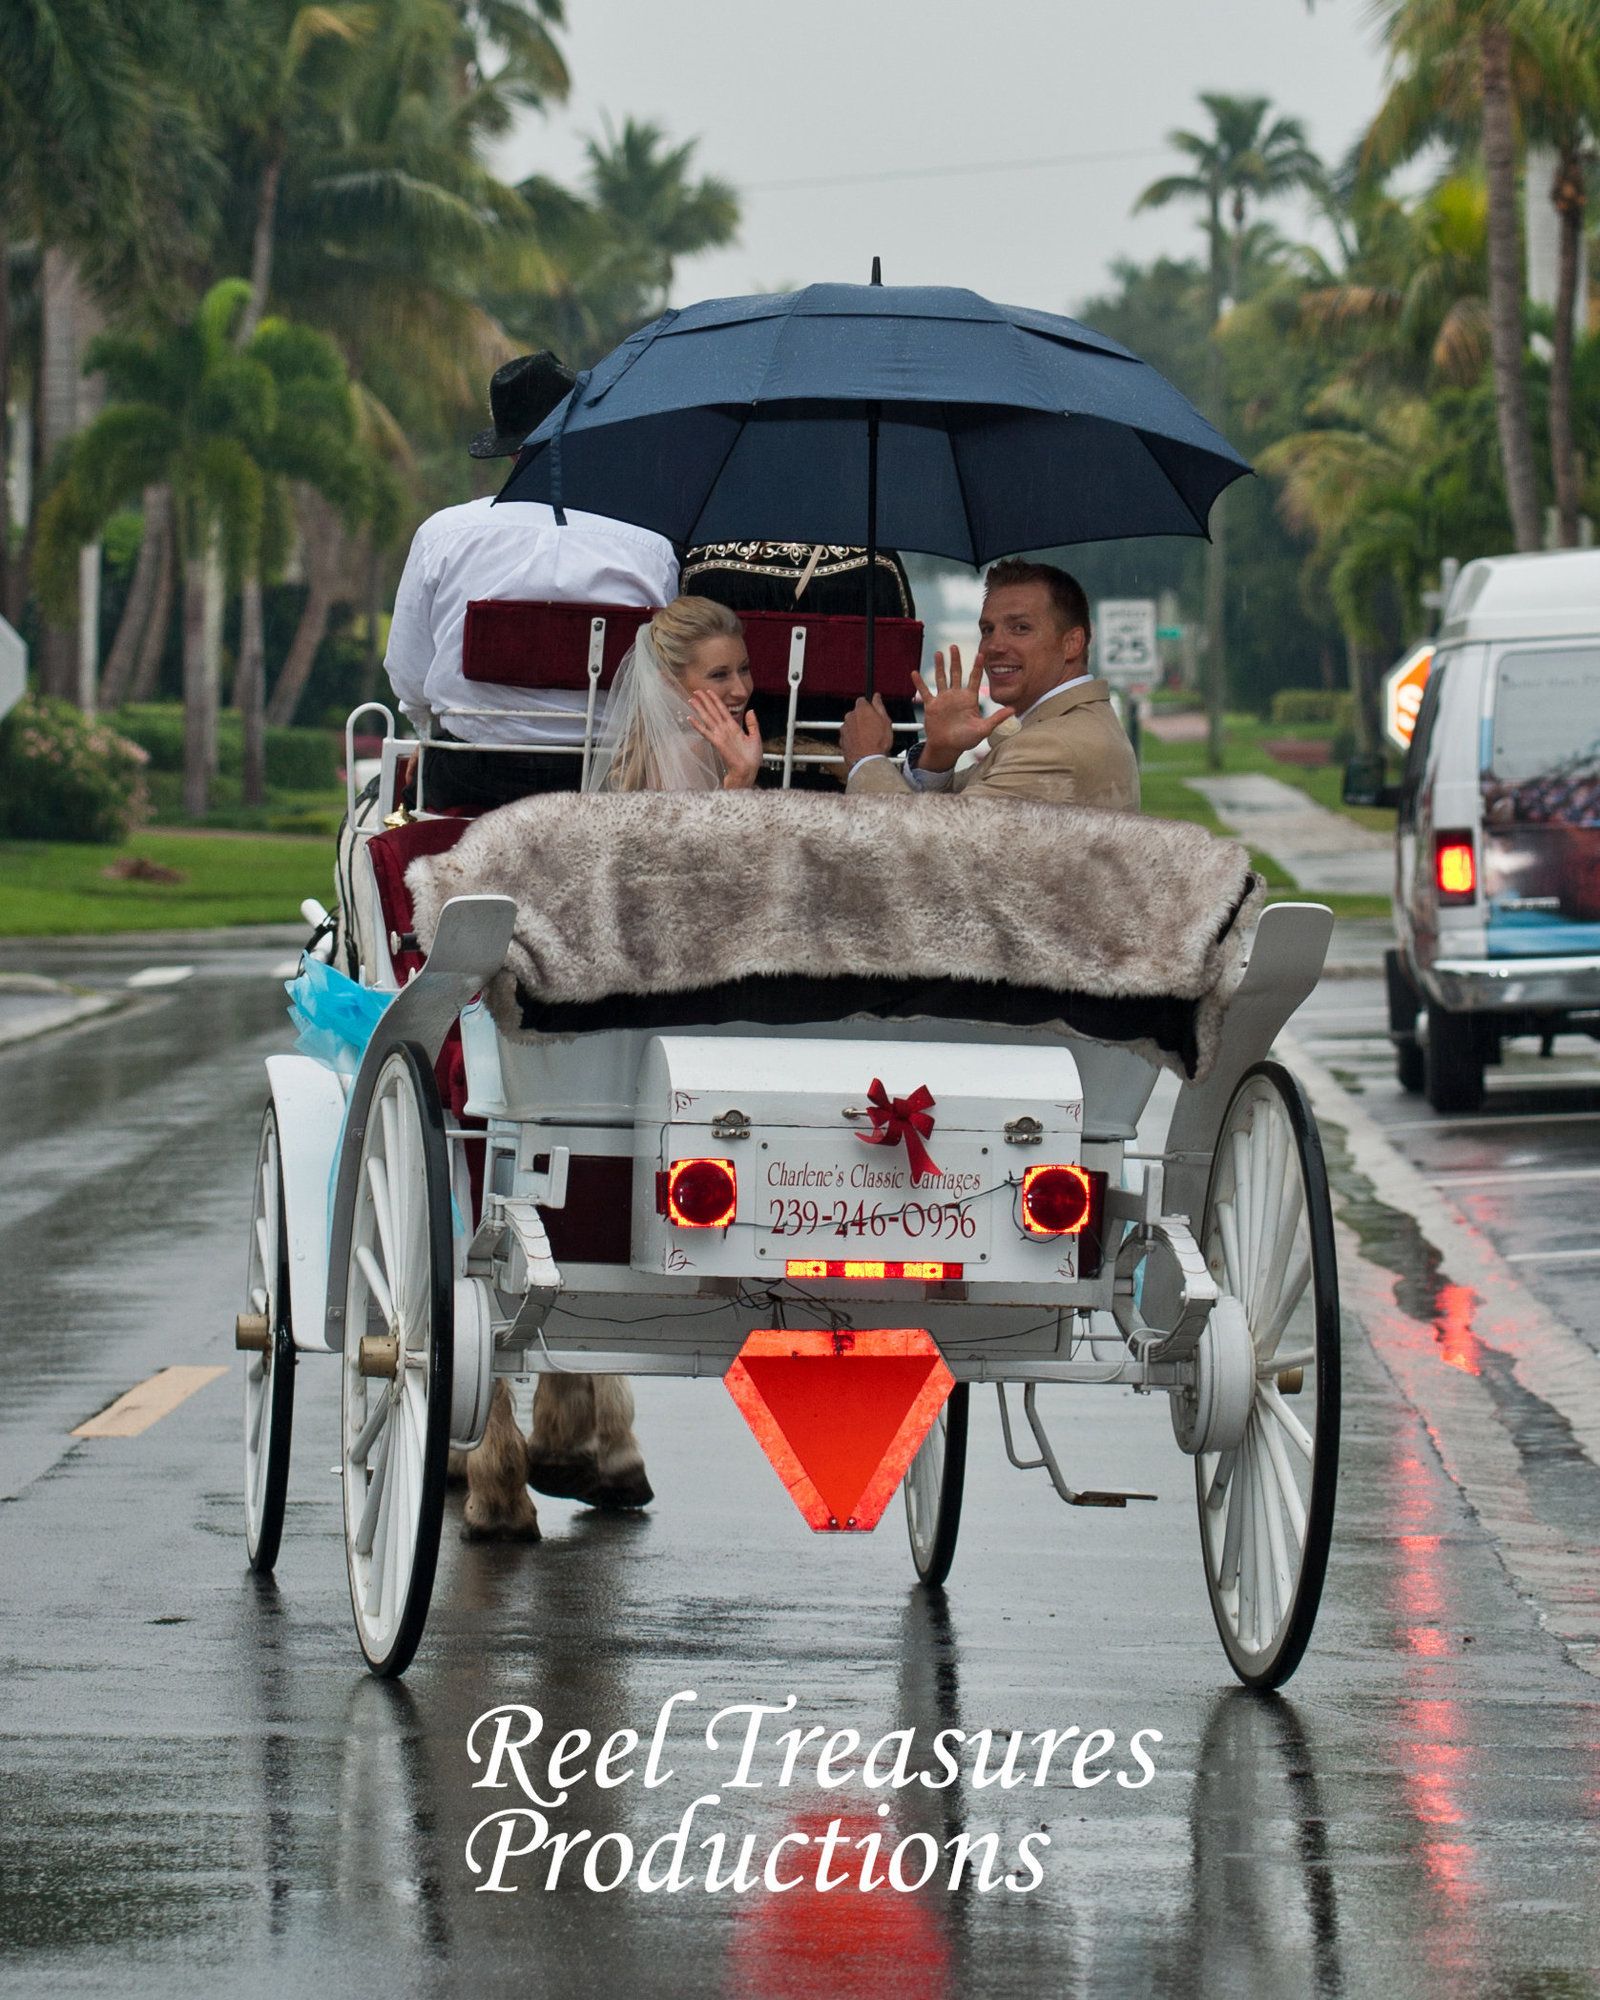 Reel Treasures Productions is proud to be on many of the Hotels & Resorts Premier Vendor Lists in Naples Fl, Fort Myers Fl, Marco Island Fl, Sanibel Island Fl, Captiva Island Fl.